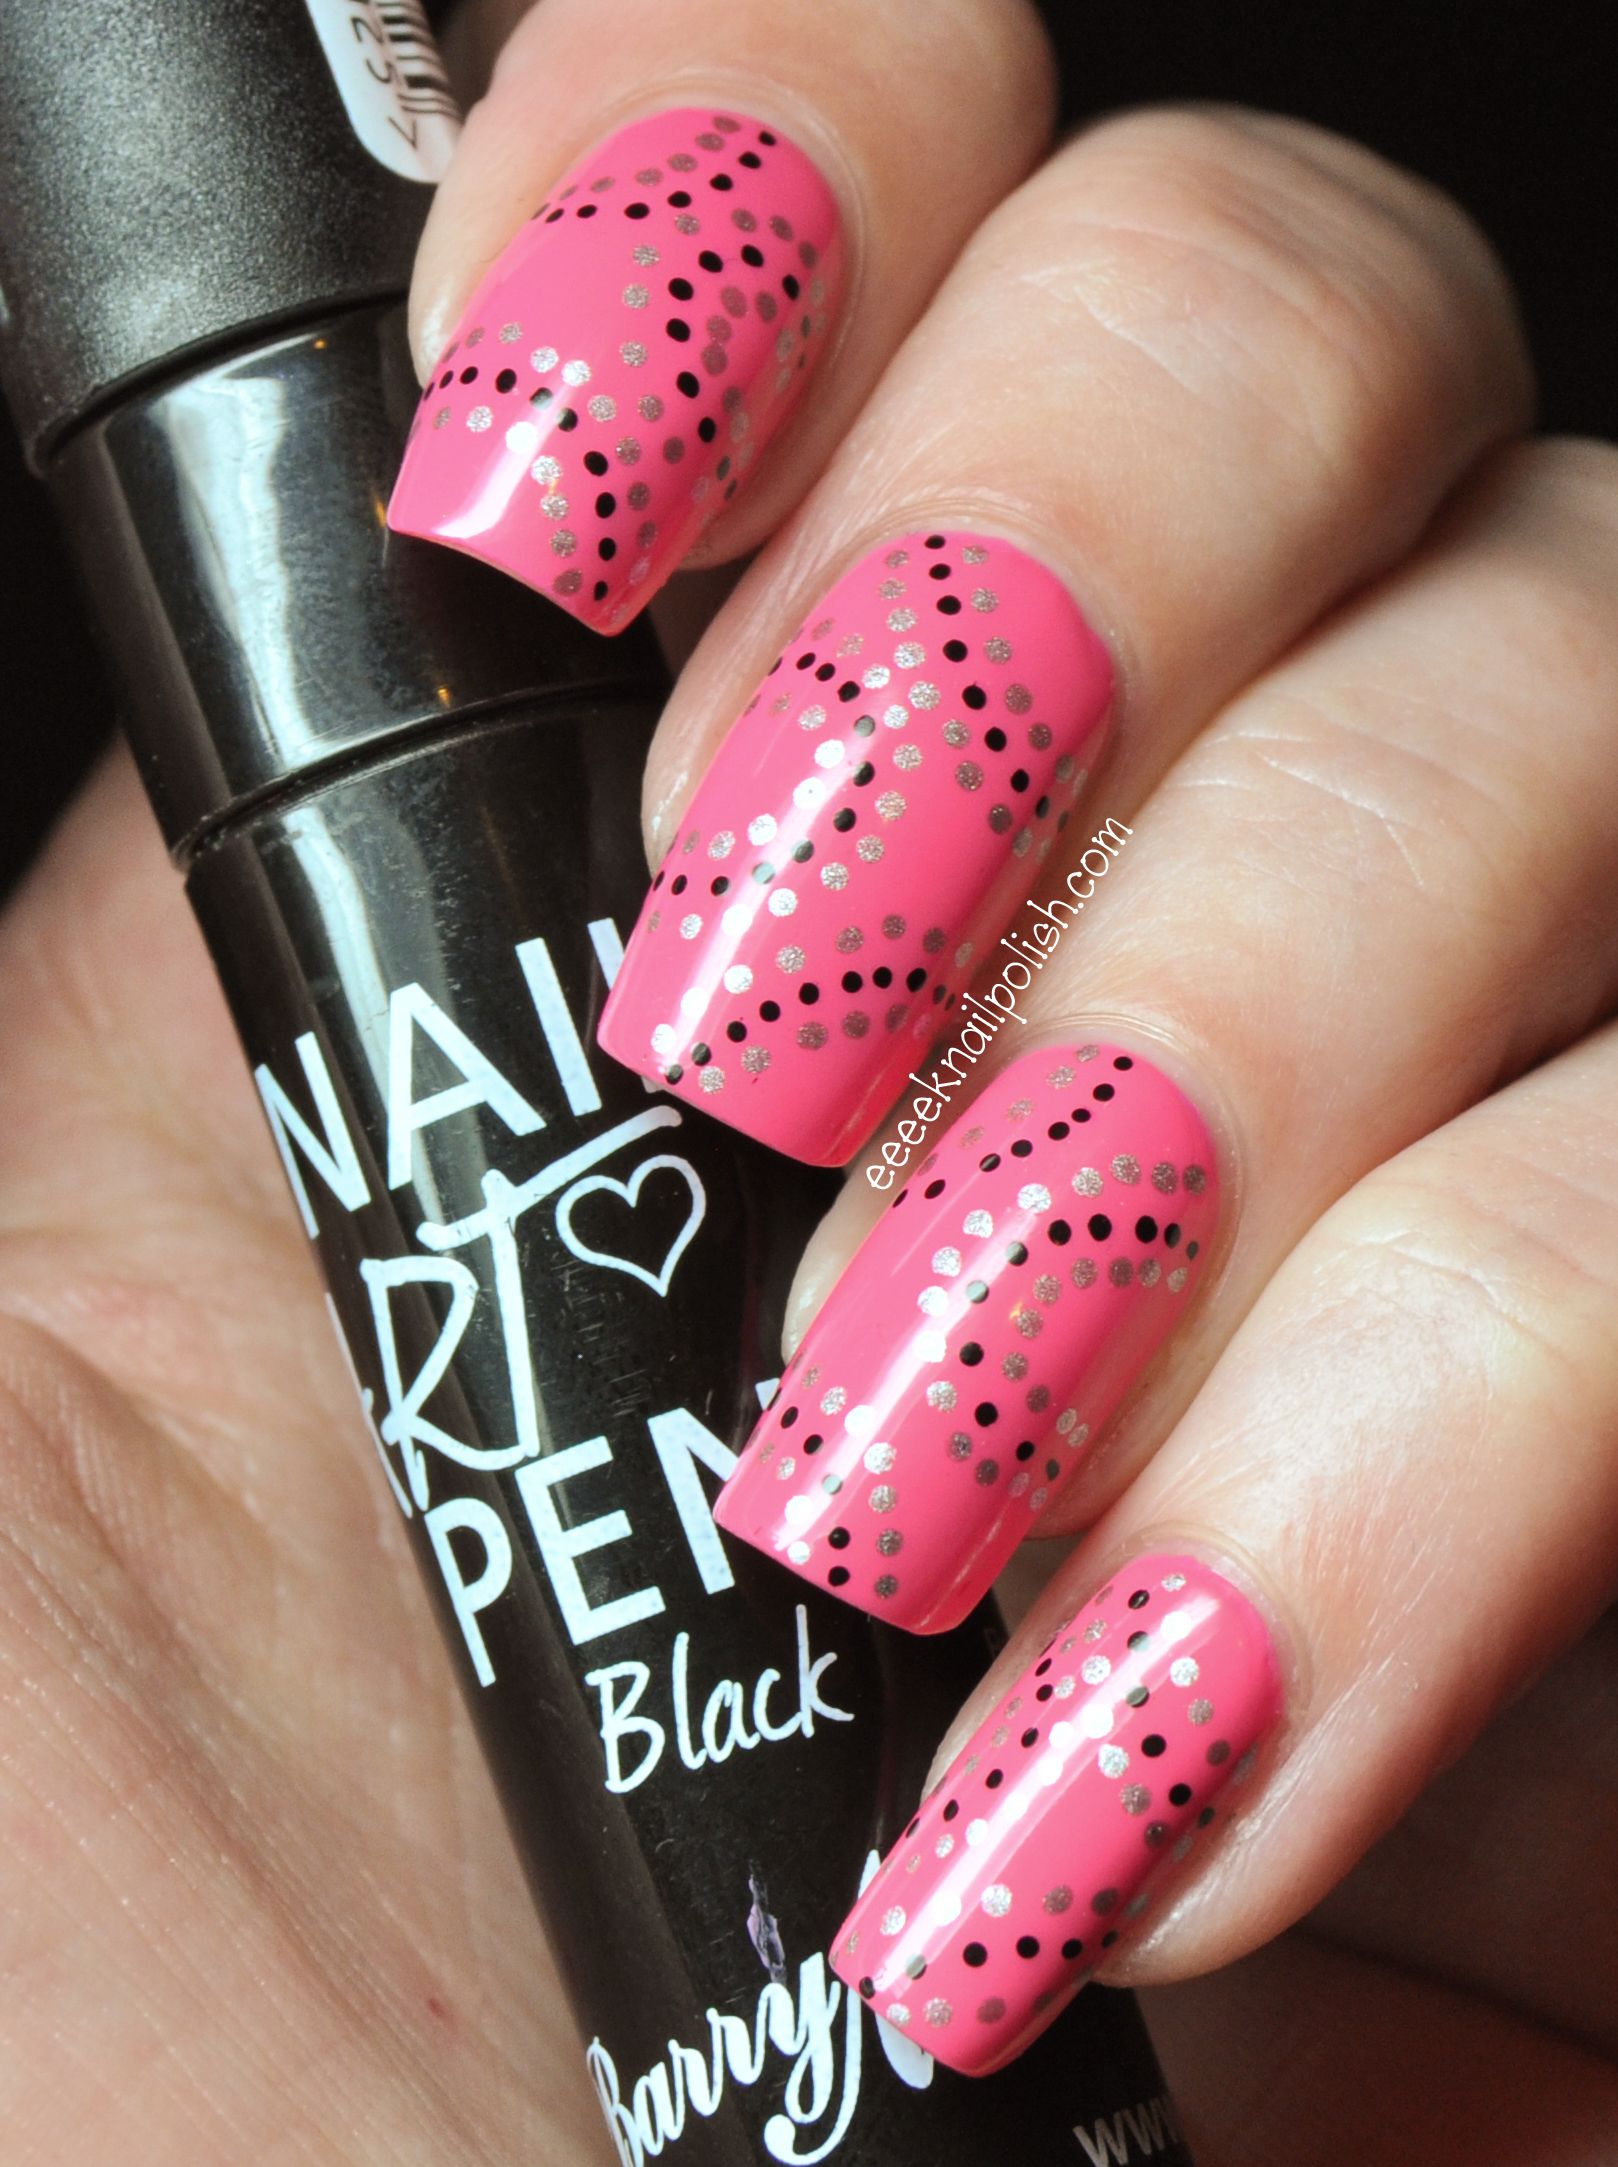 Nail Art Ideas: NAIL ART PEN DESIGNS … | Pinteres…